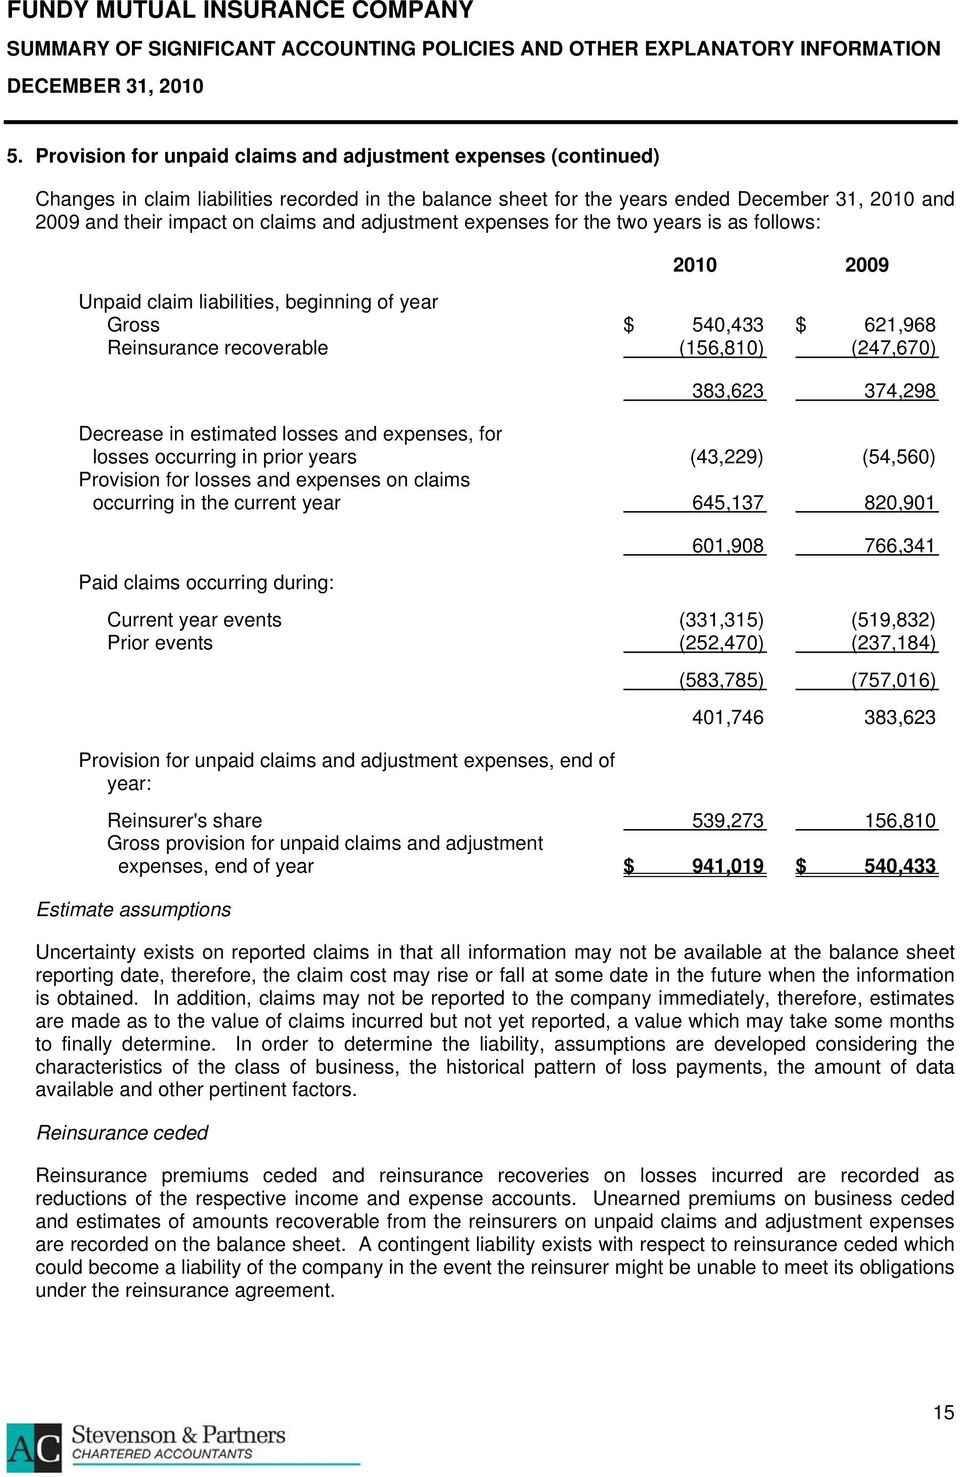 estimated losses and expenses, for losses occurring in prior years (43,229) (54,560) Provision for losses and expenses on claims occurring in the current year 645,137 820,901 Paid claims occurring